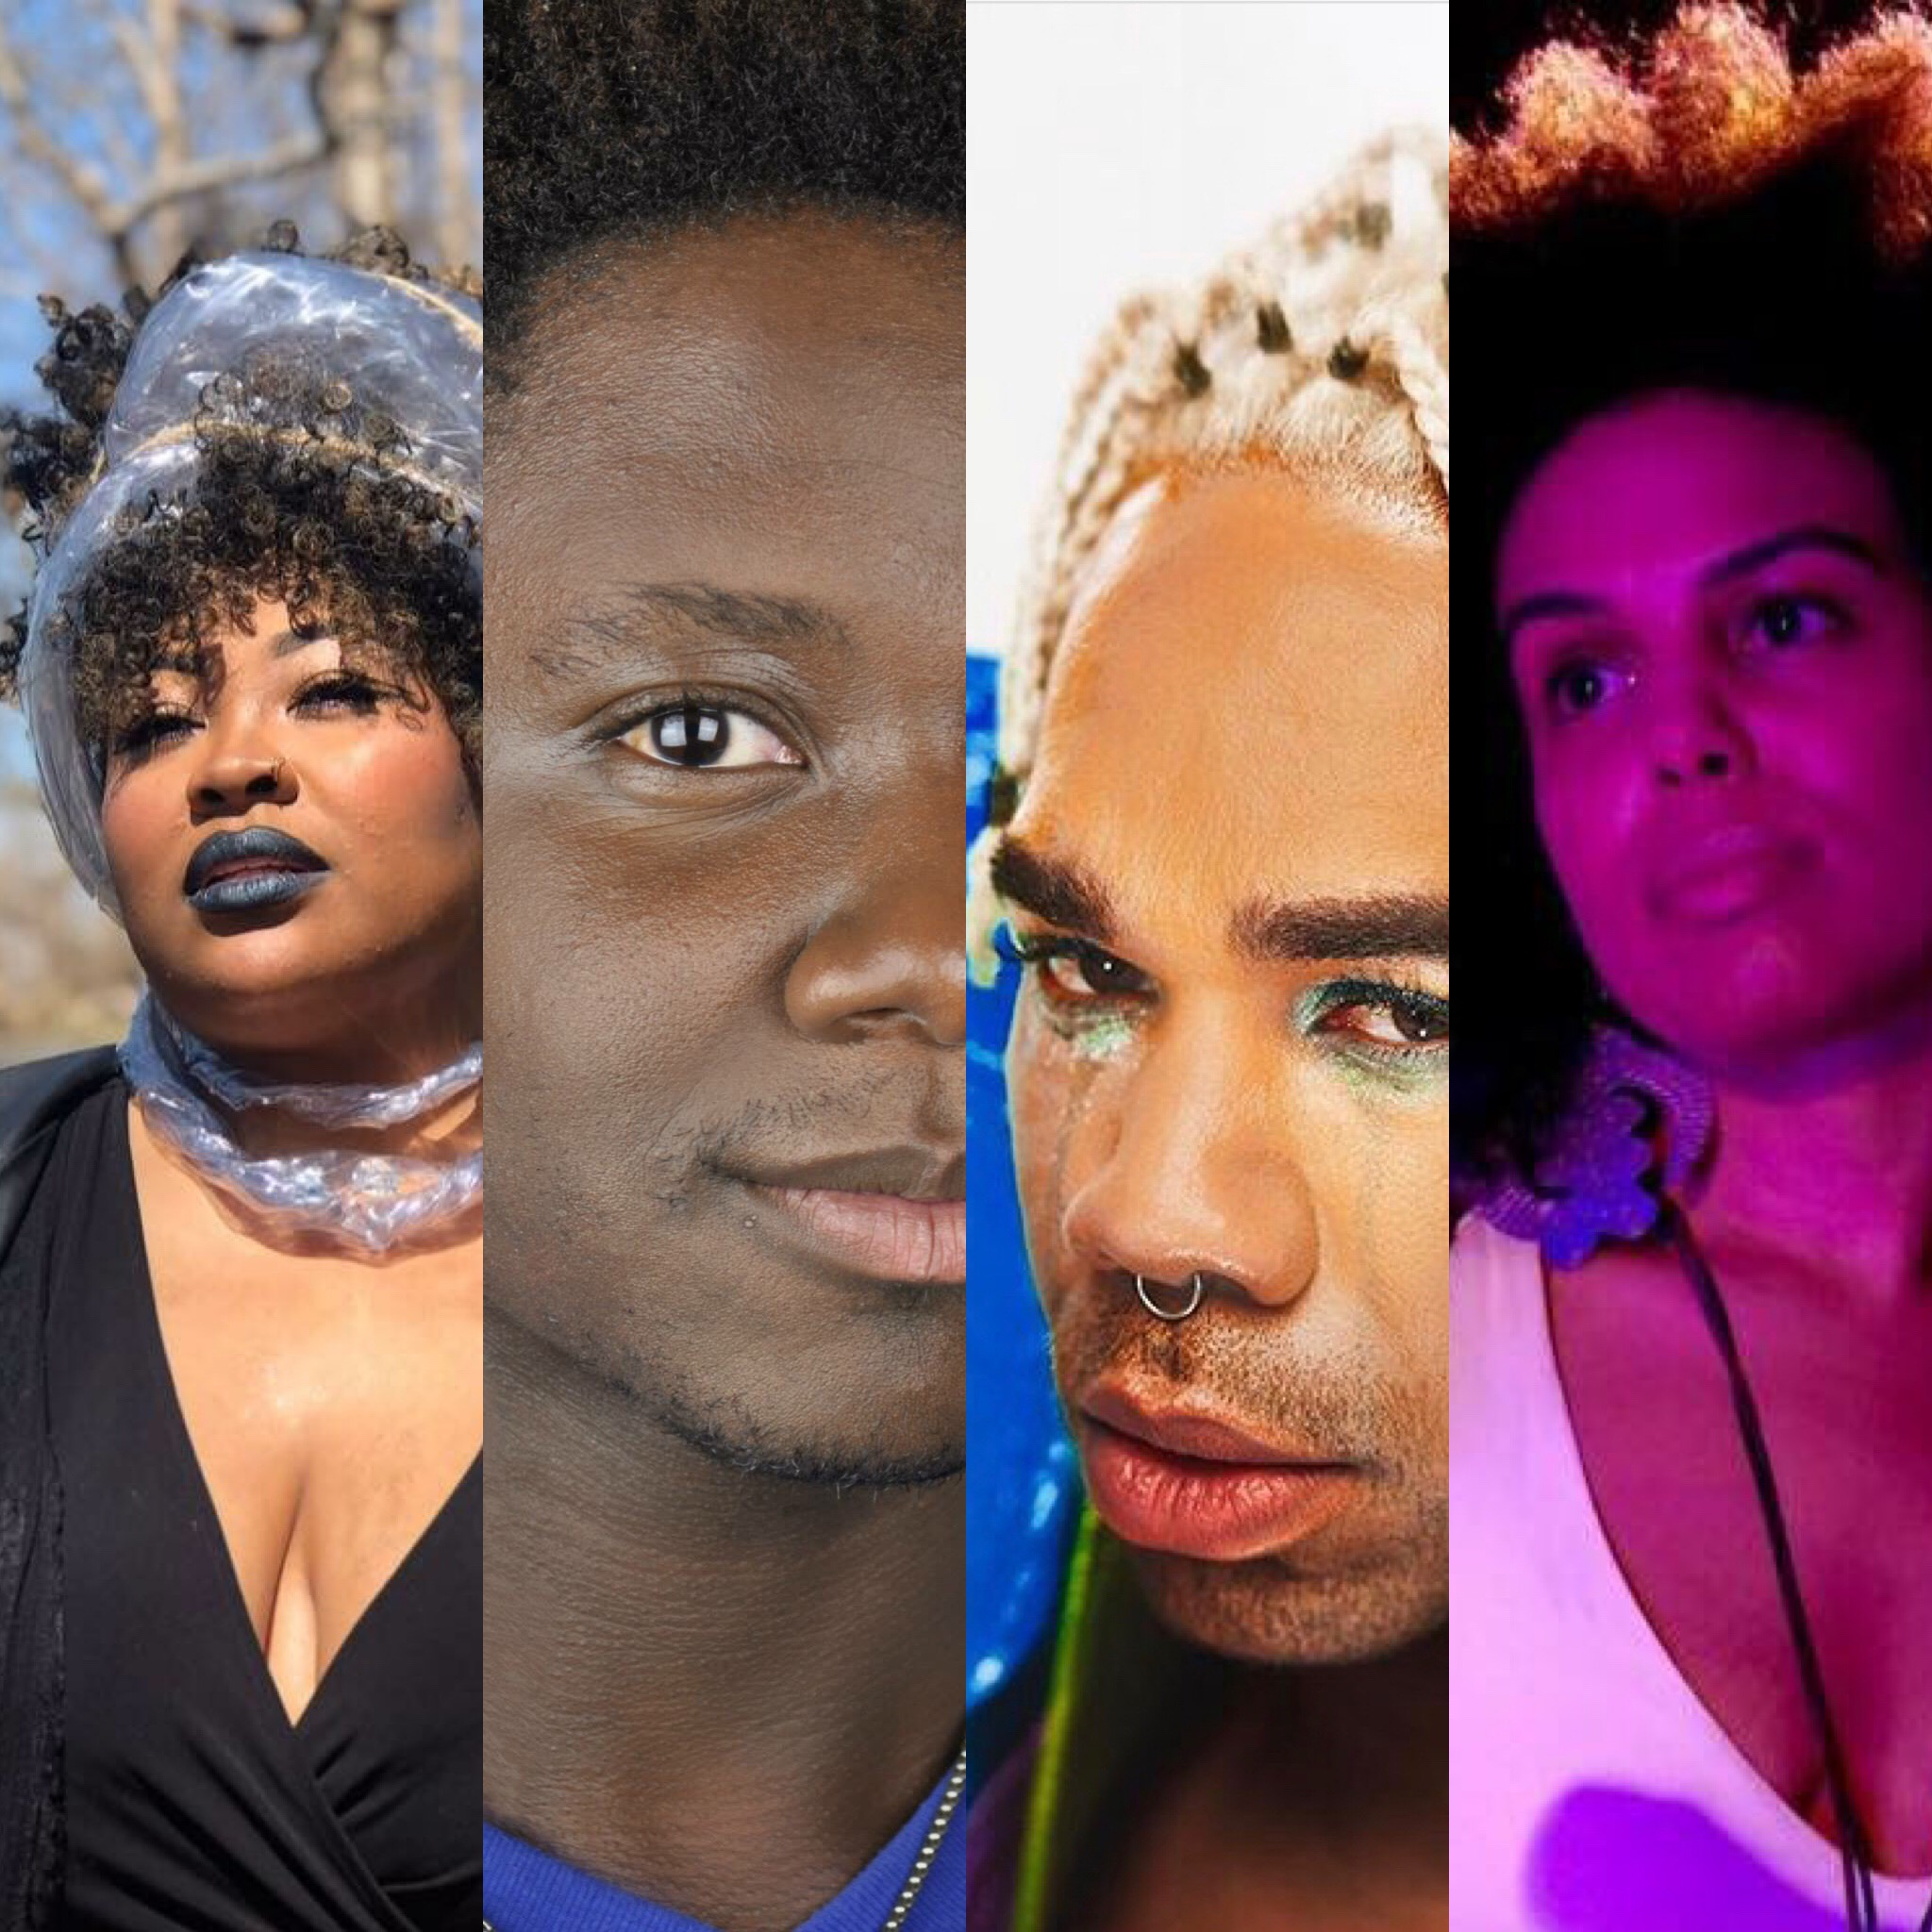 Upcoming Performances - Music Presentations for Pride in NYC!